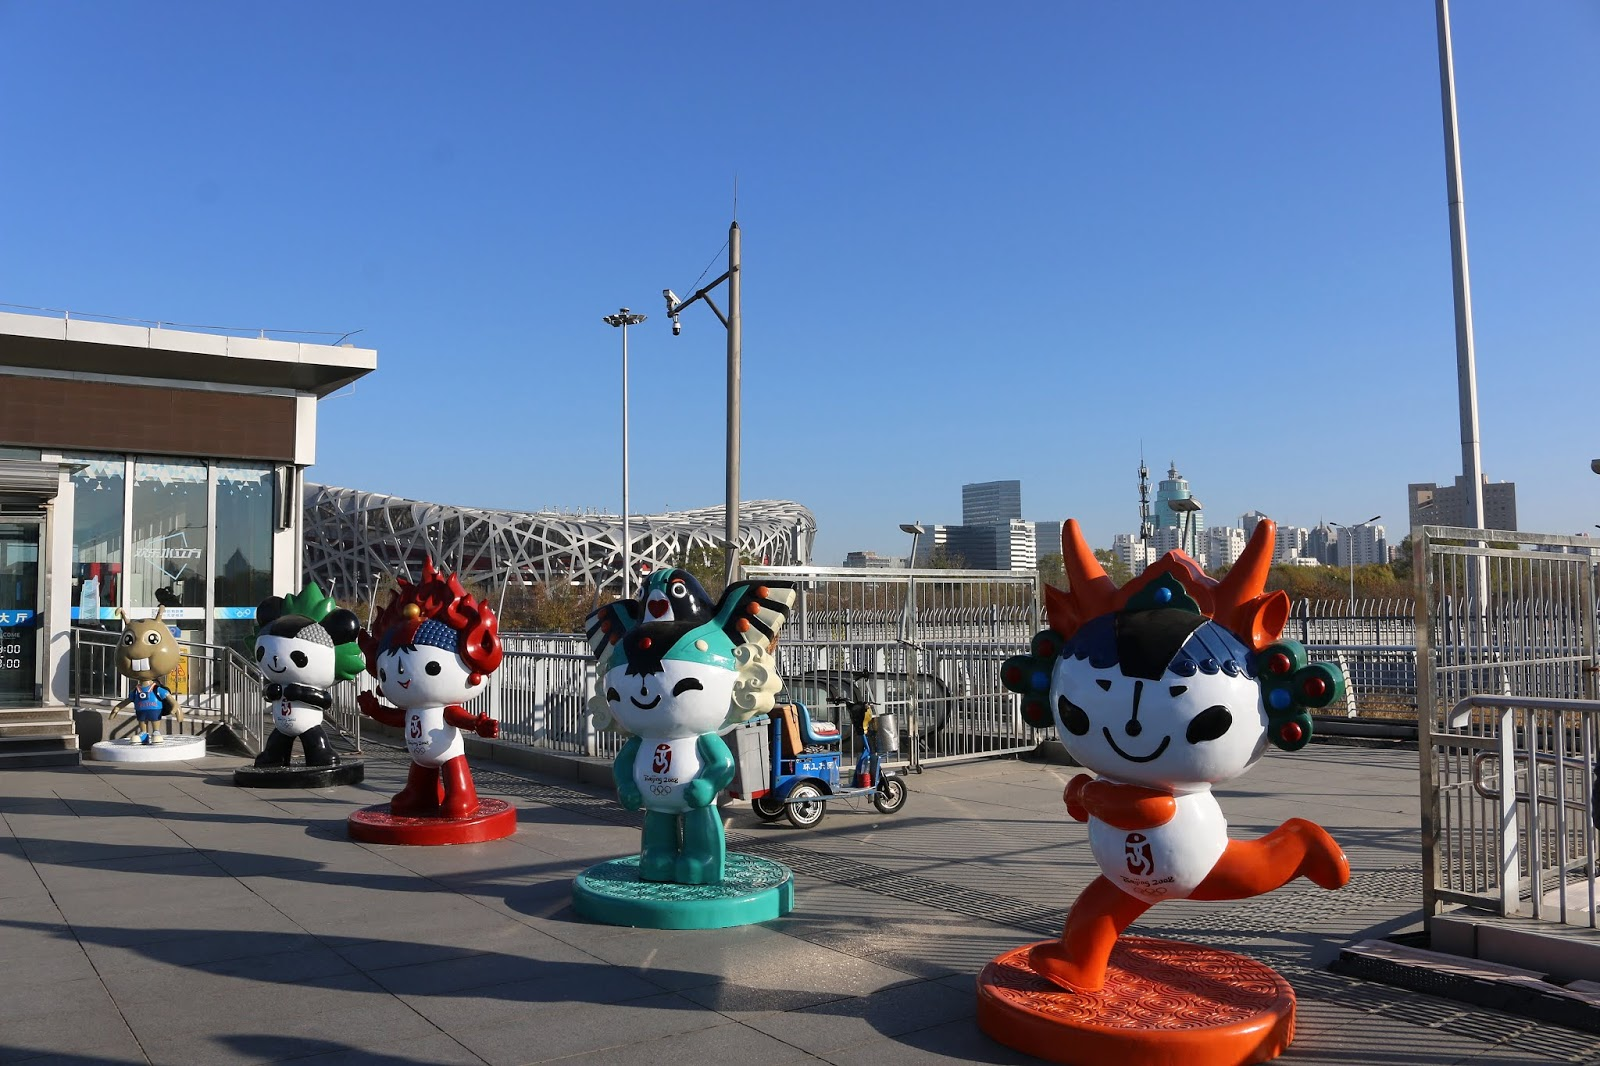 Beijing Olympic Center